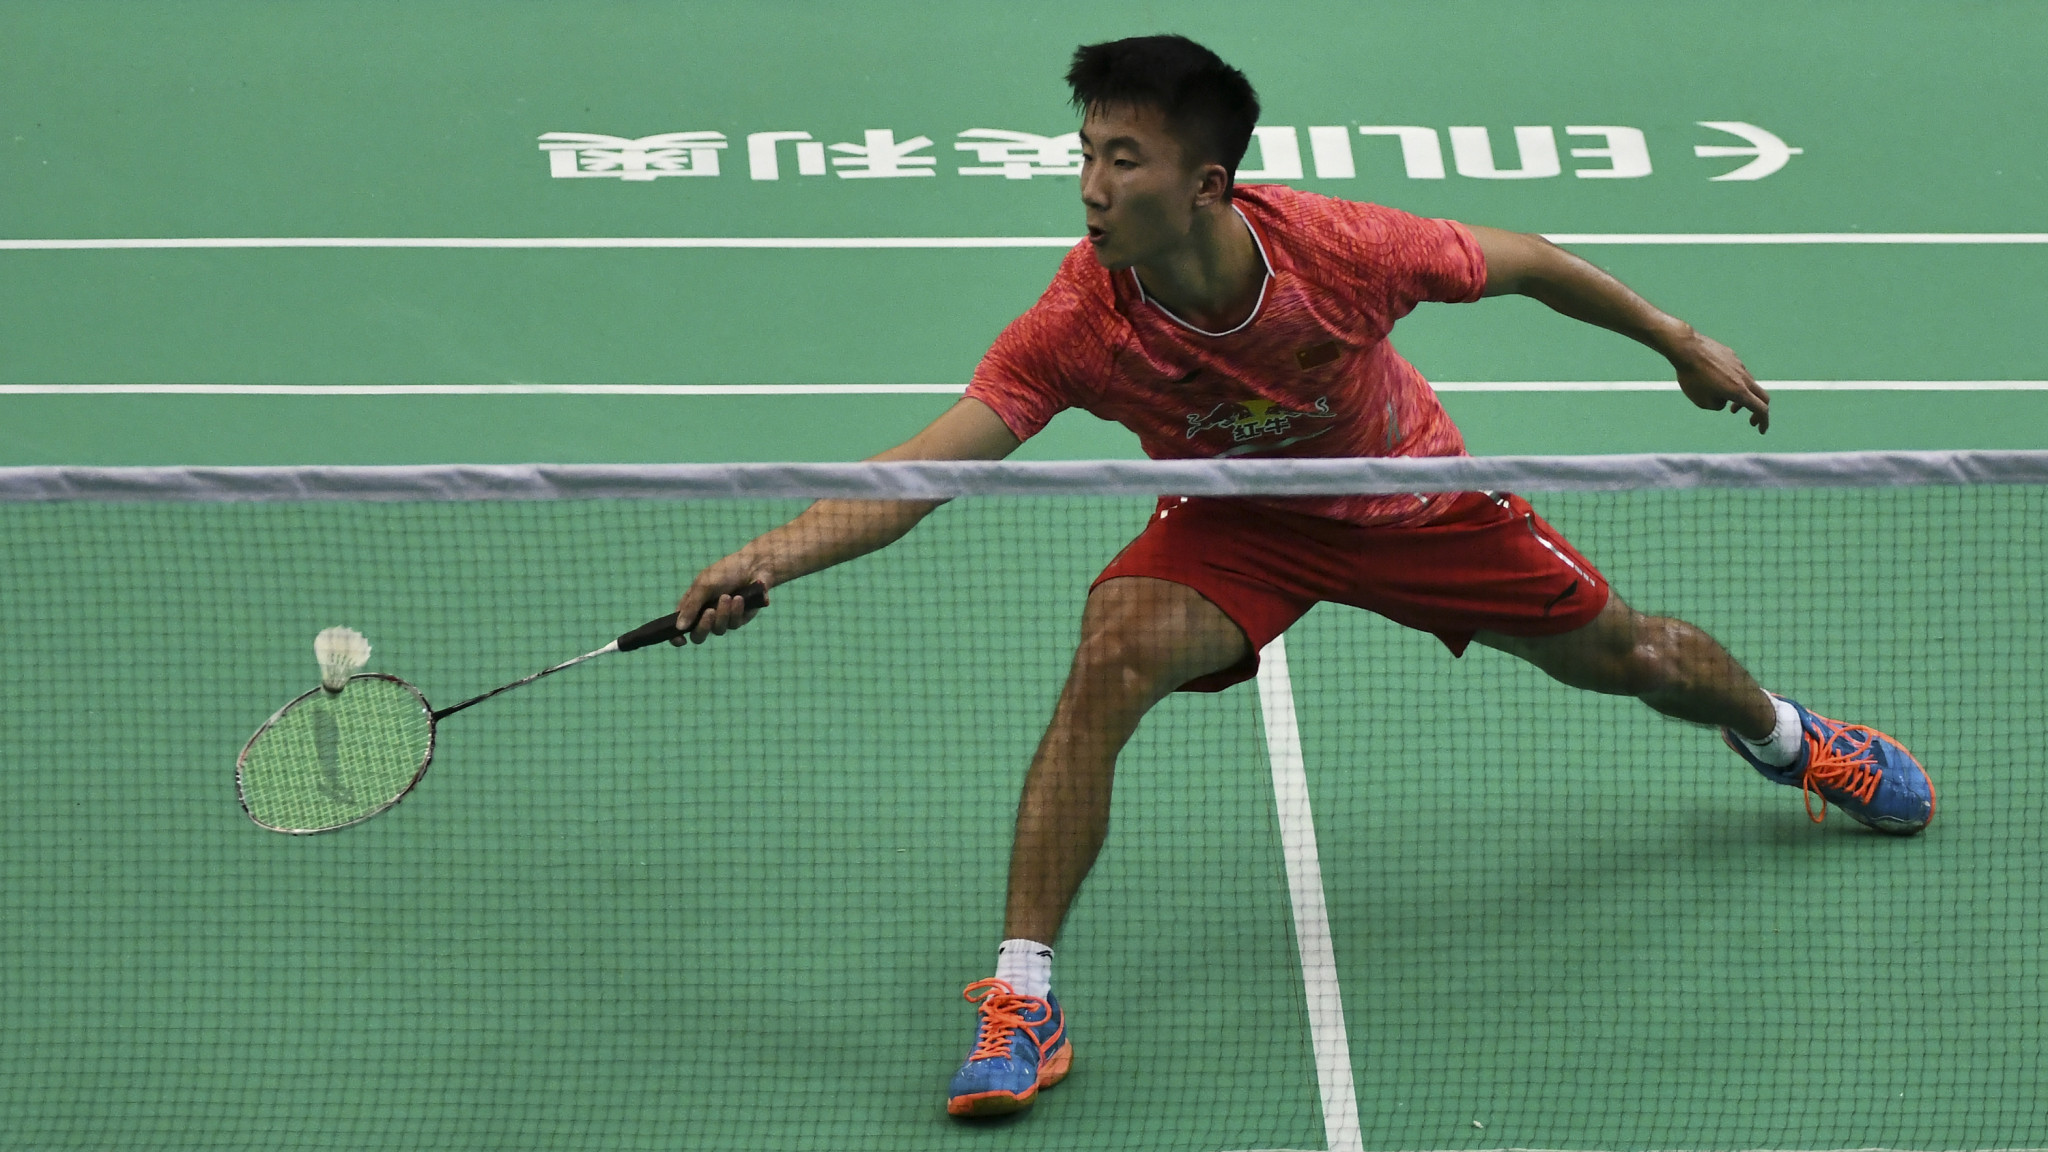 Qualifying wins give China's Sun Feixiang meeting with eighth seed Liew at BWF Australian Open